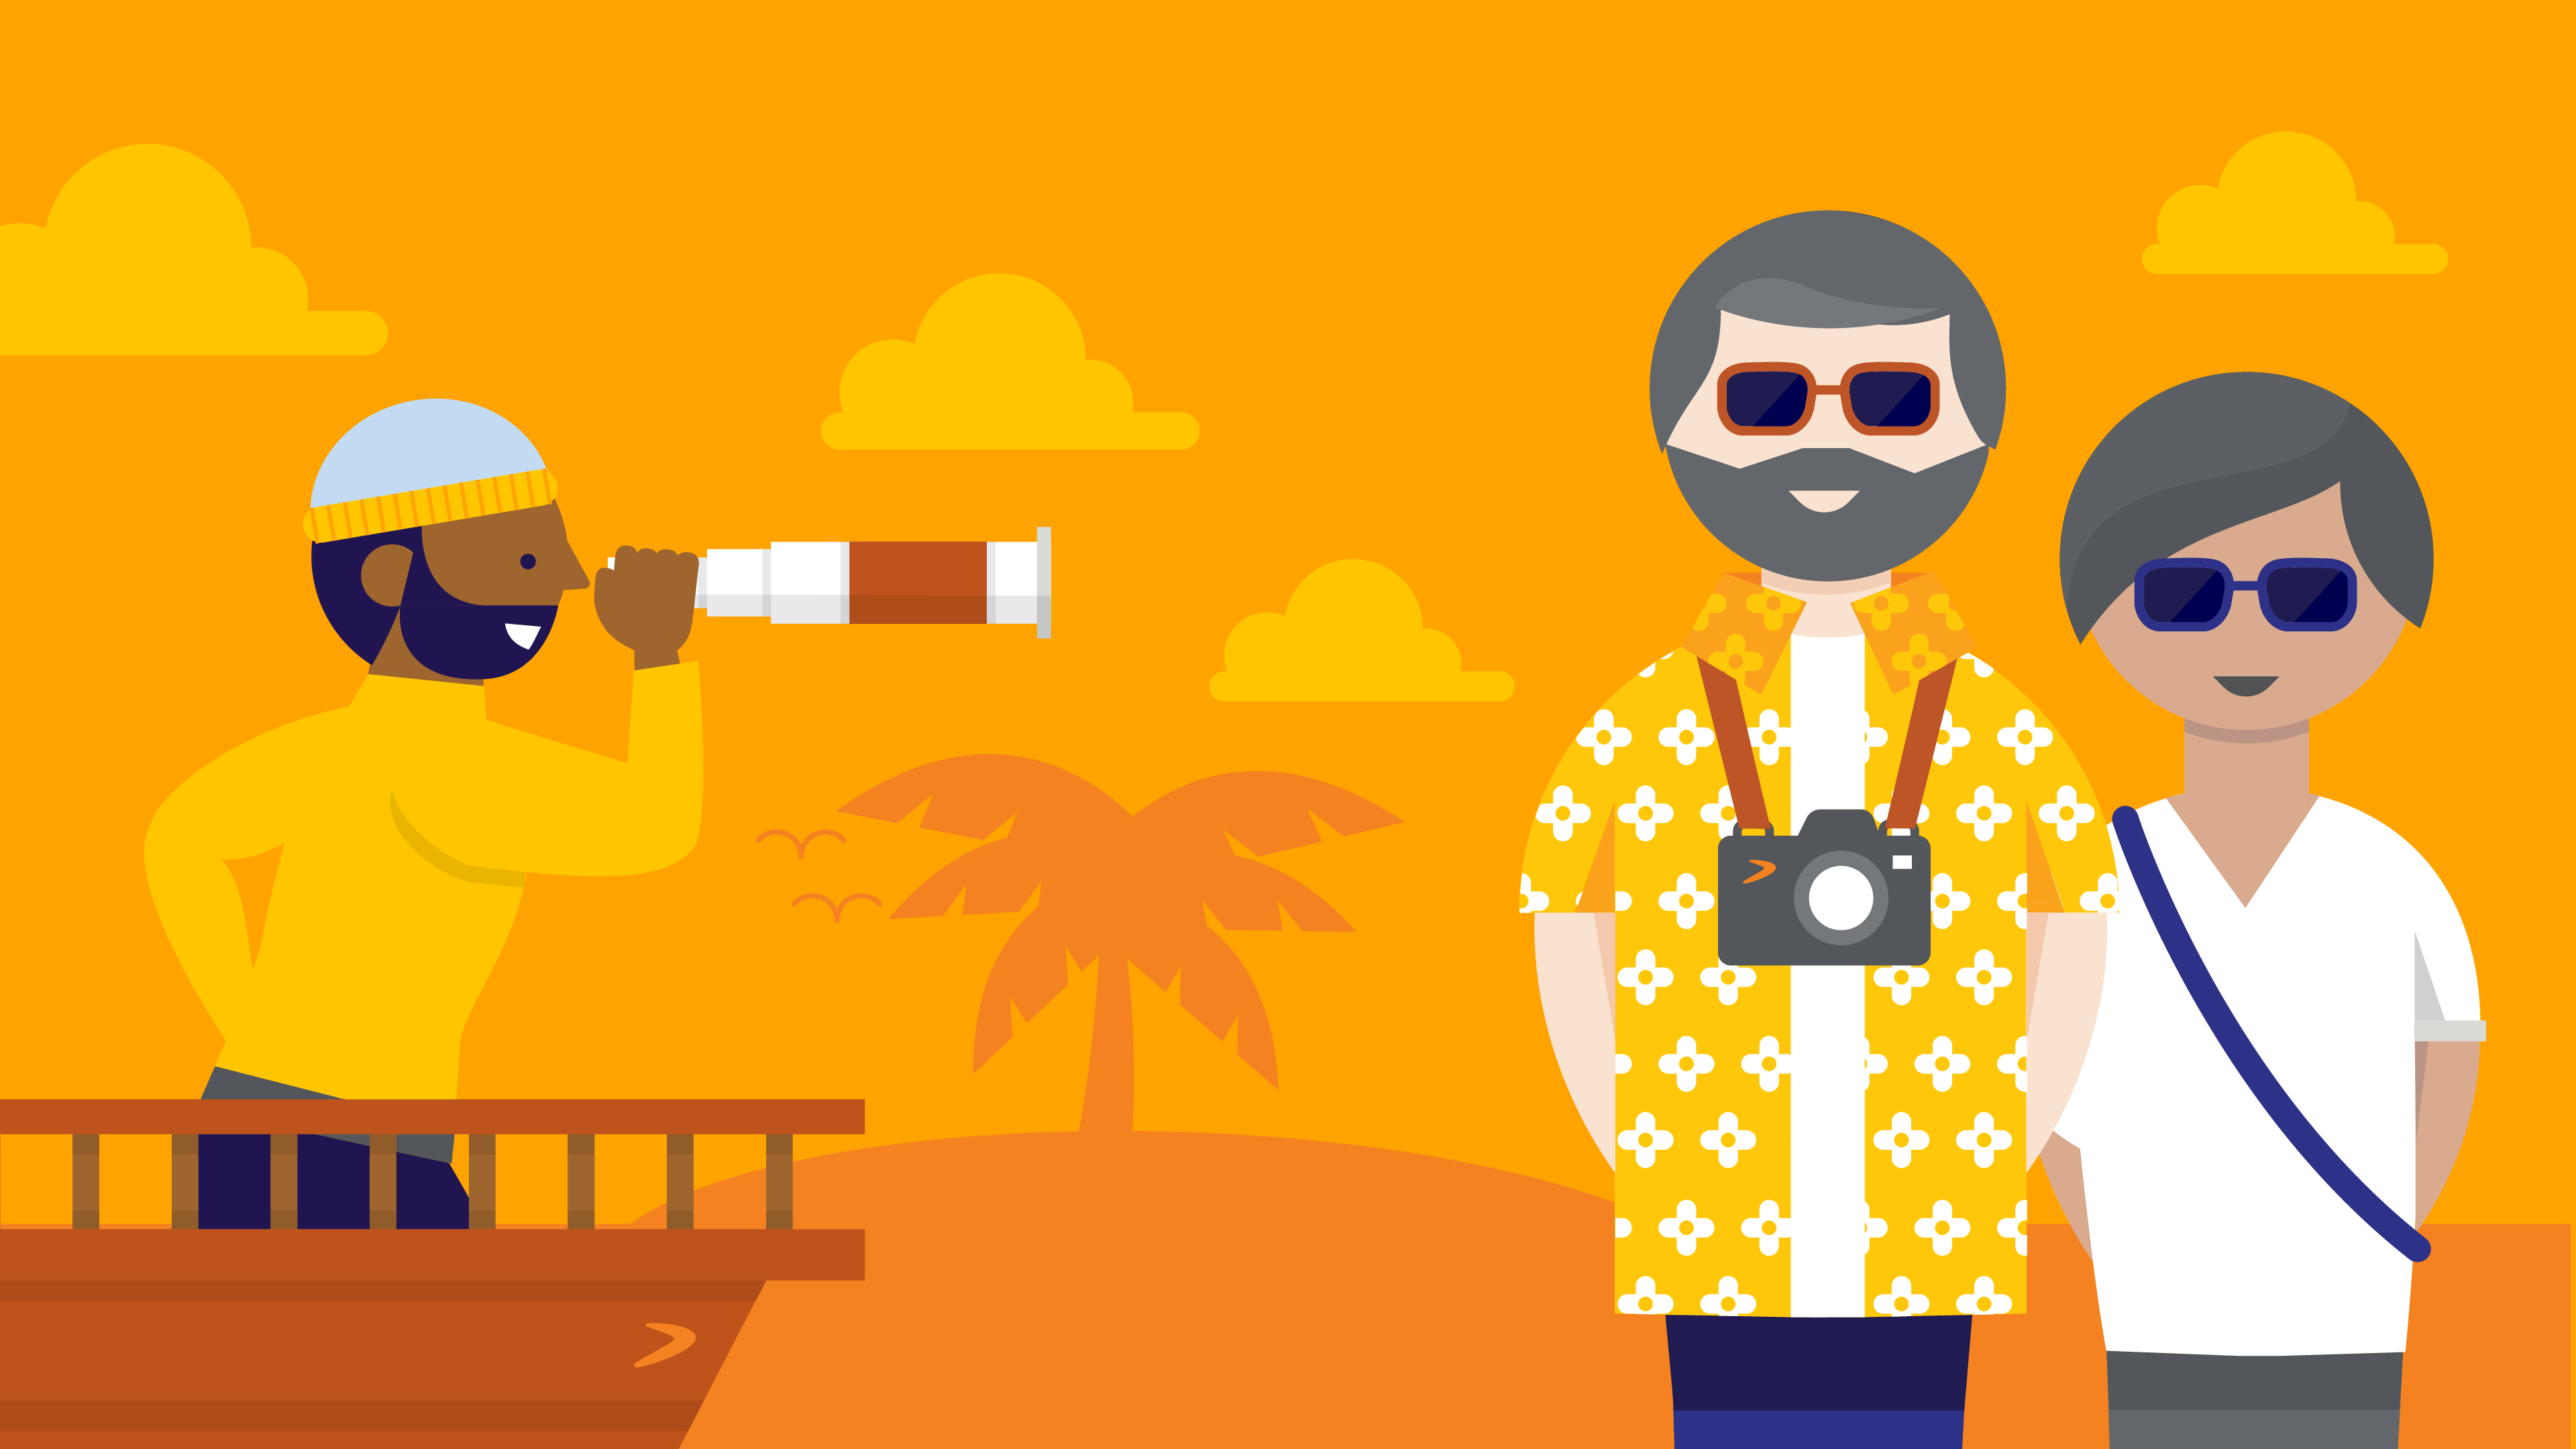 AustralianSuper Illustration. An illustration of two stages of members journey with their superannuation. The 'planner' is depicted as a navigator on a ship. The retiree is depicted as couple holidaying in resort wear. The illustration is in warm golden tones.